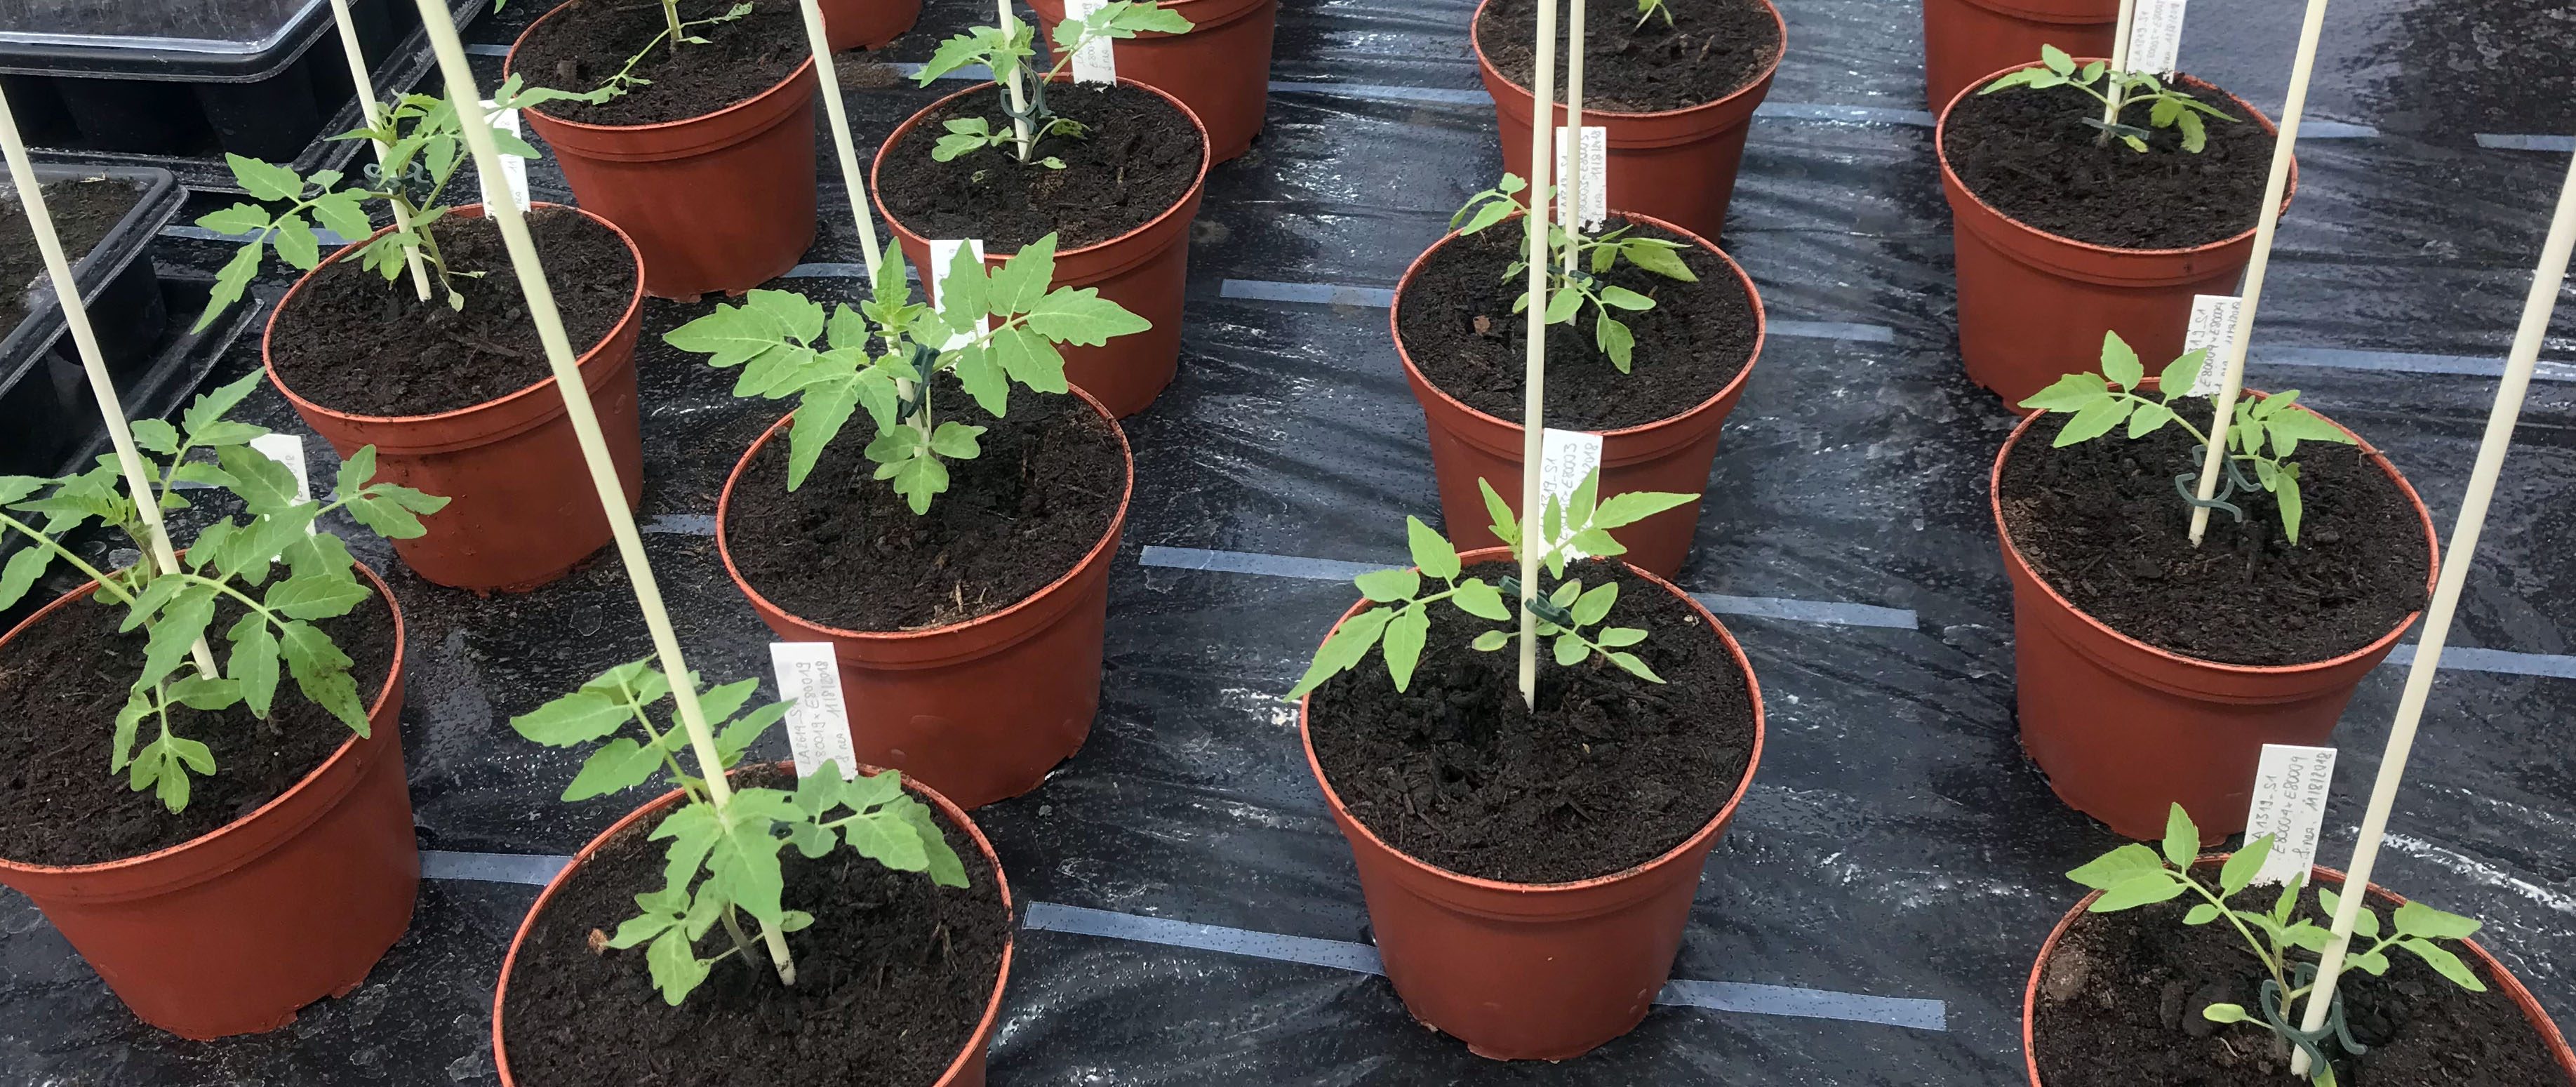 tomato plants in greenhouse @simon aeschbacher UZH